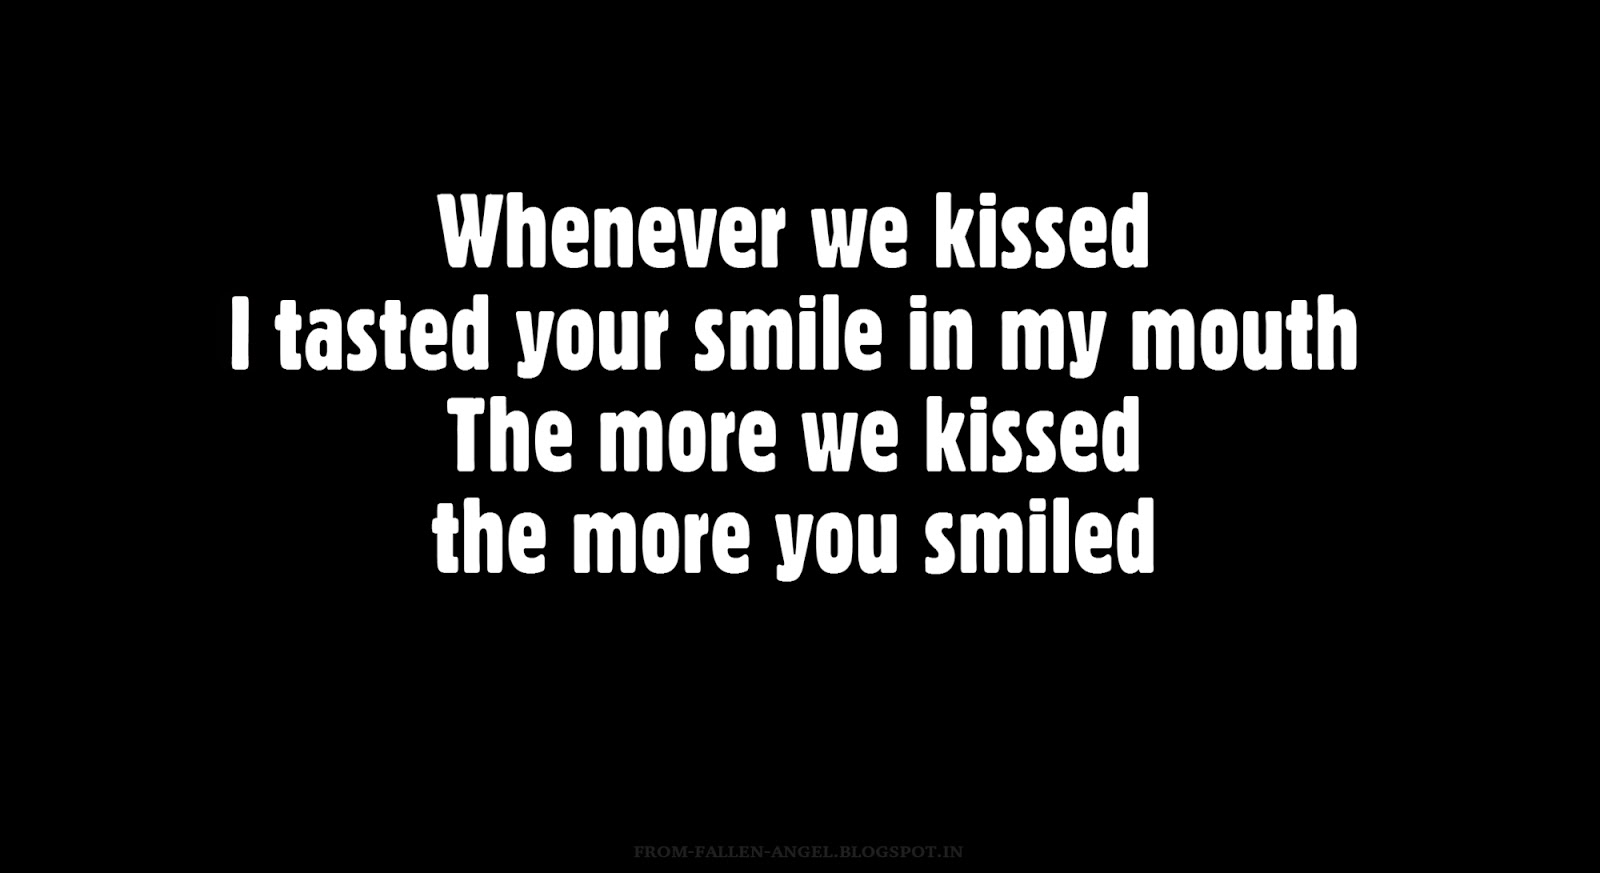 Whenever we kissed I tasted your smile in my mouth. The more we kissed the more you smiled